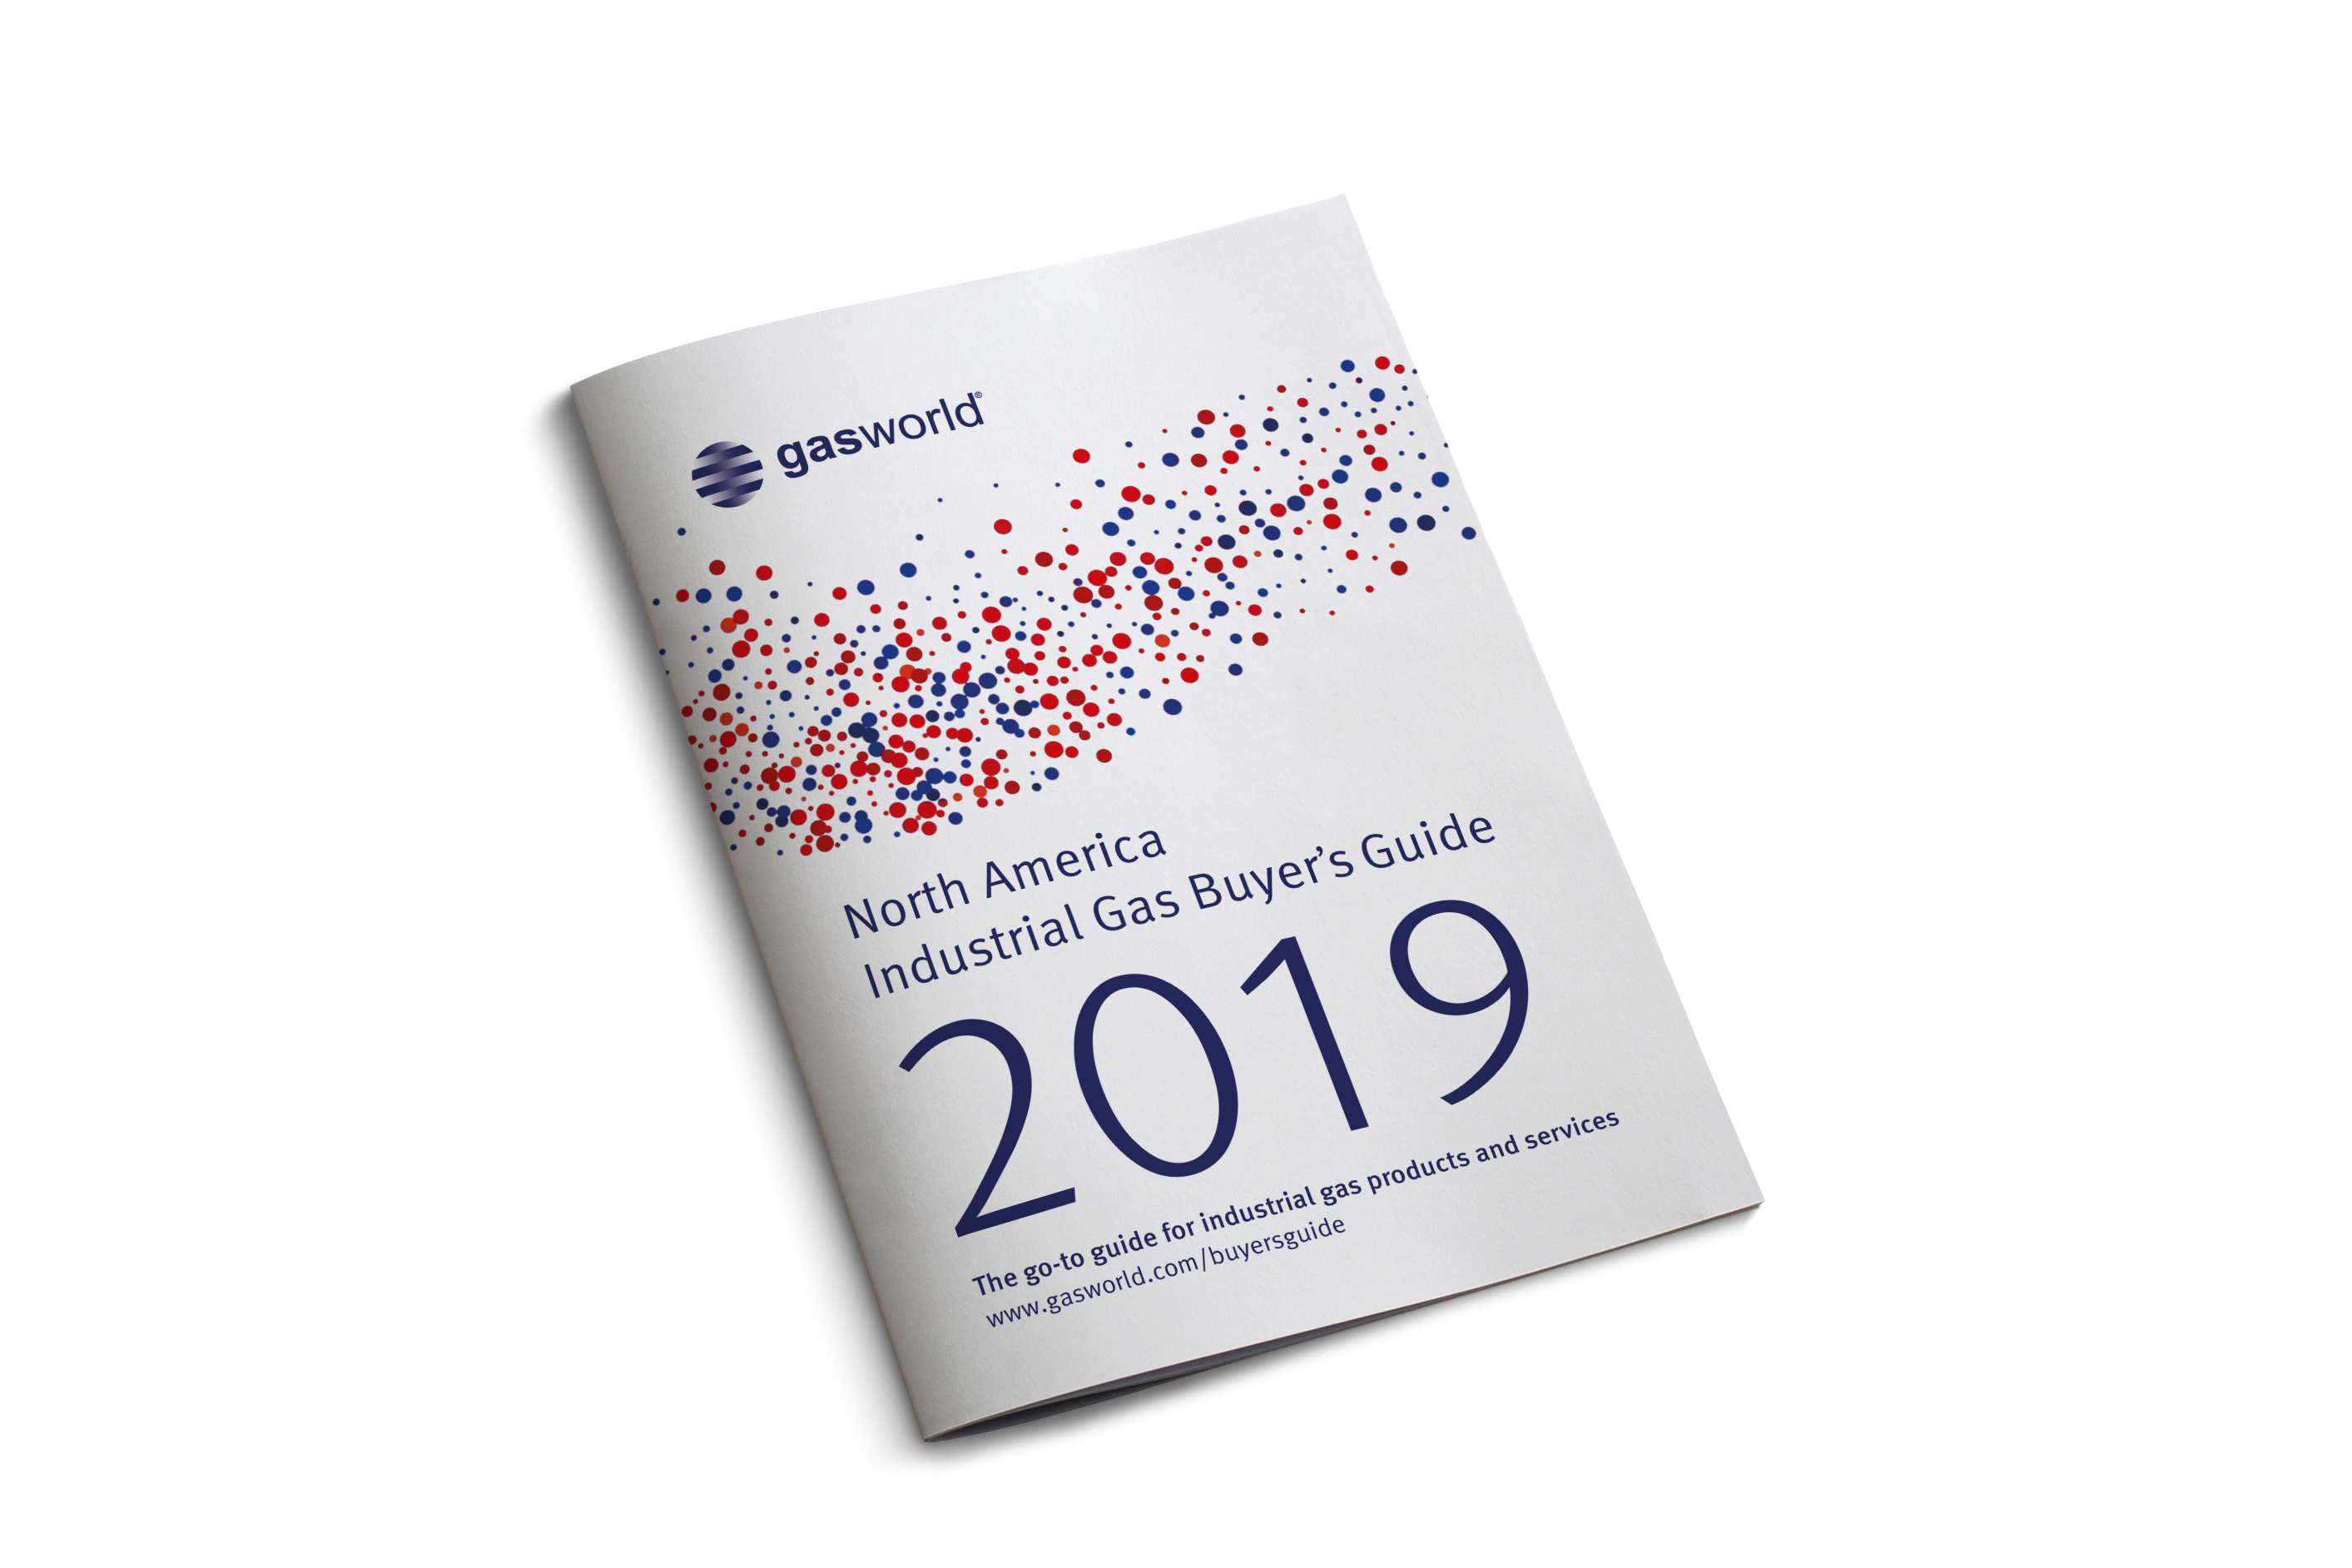 The North America Industrial Gas Buyers Guide 2019